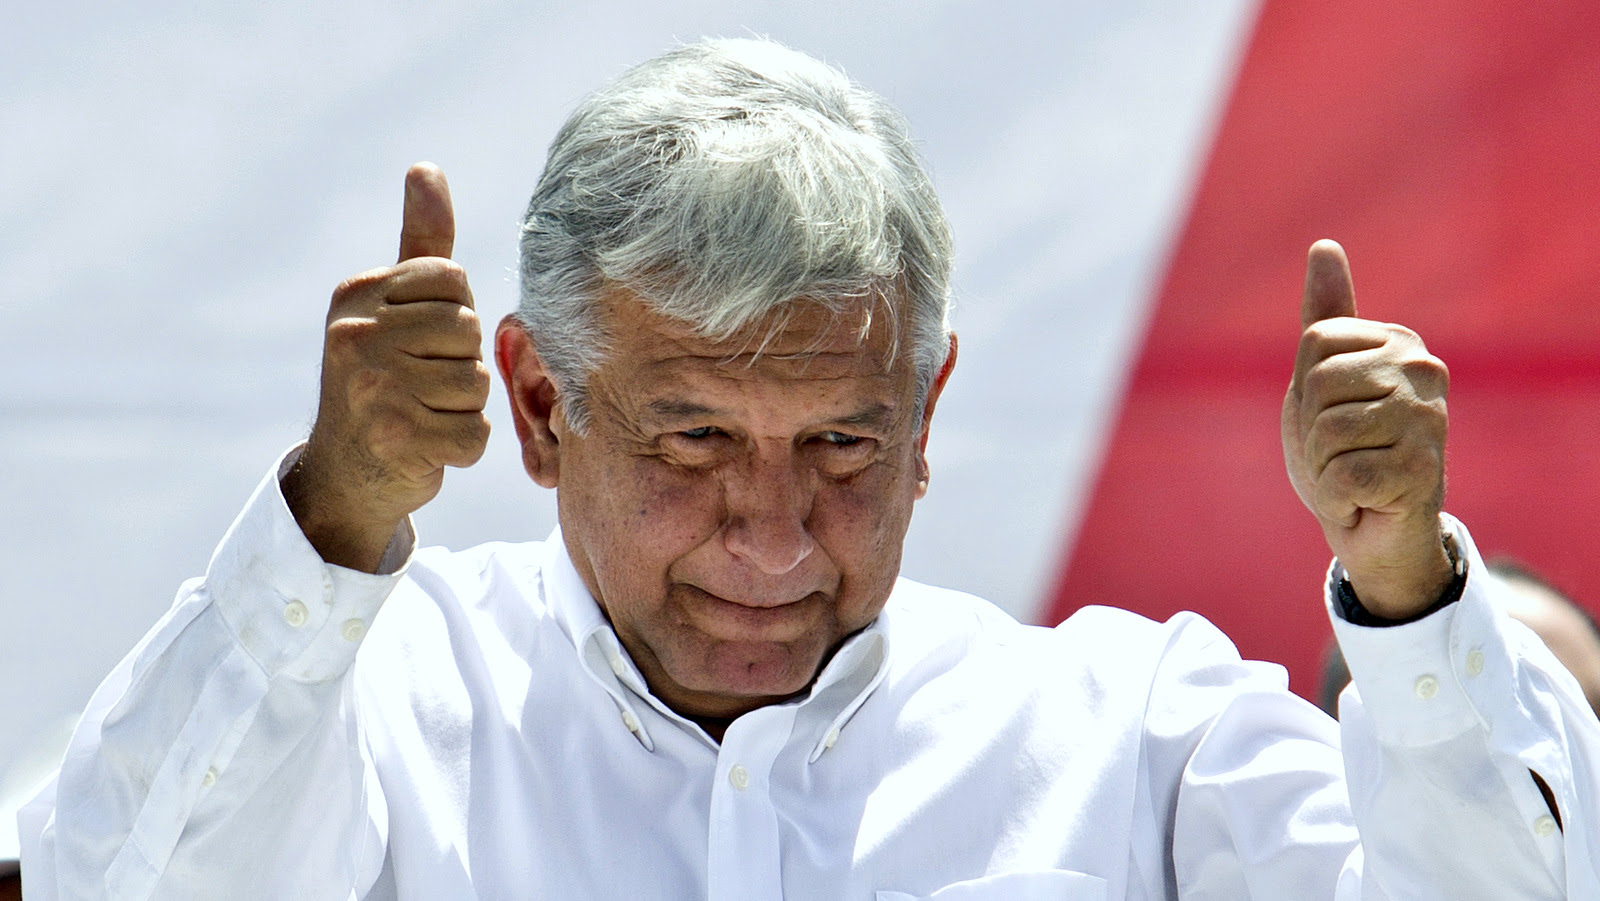 Andres Manuel Lopez Obrador, Mexican presidential candidate , gives a thumbs up to his supporters at Mexico City's main plaza, the Zocalo, Sunday, Sept. 9, 2012. (AP/Christian Palma)